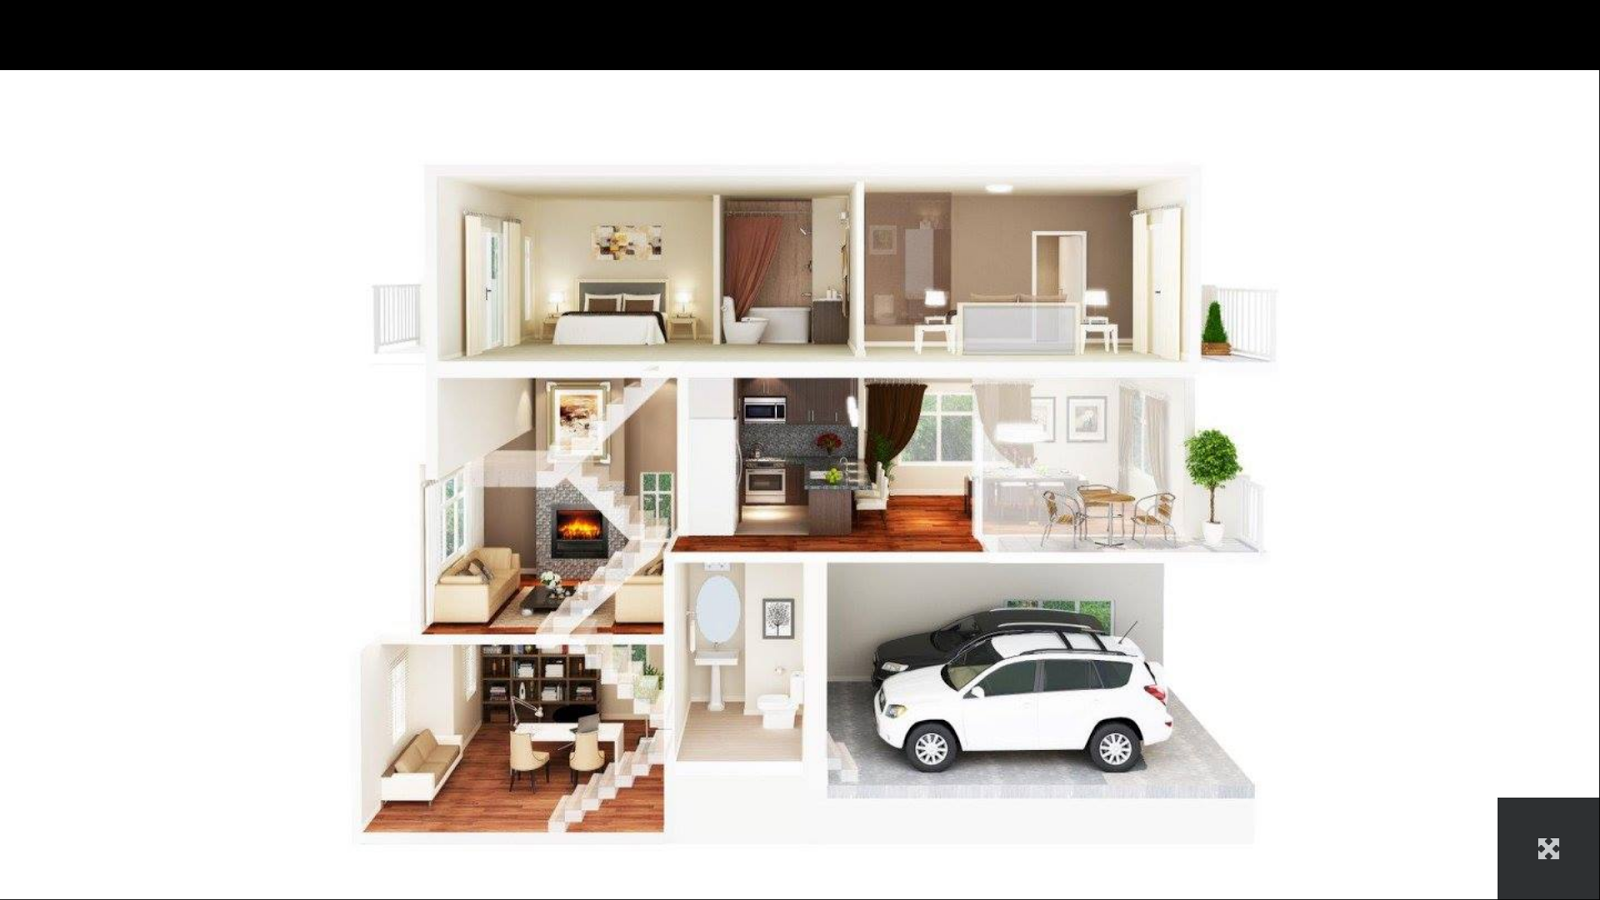 3d house plans 1 2 apk download android lifestyle apps for 3d house plans